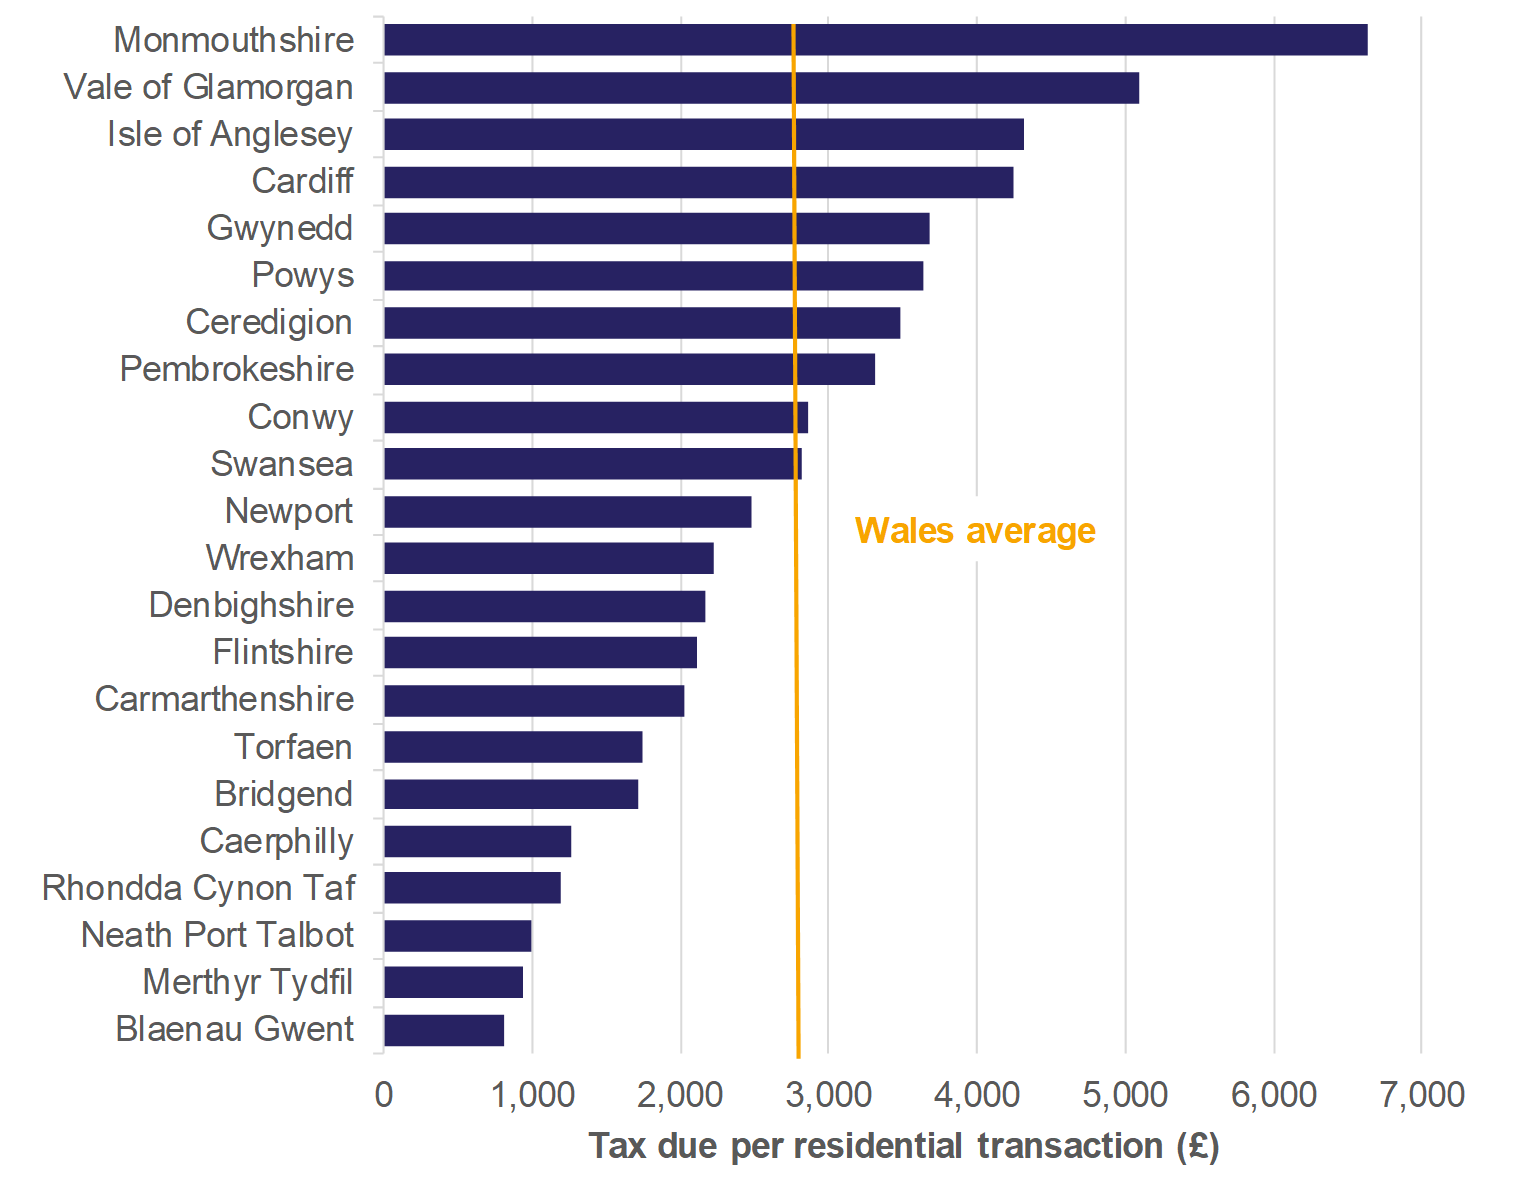 Figure 8.1 shows for residential transactions: the amount of tax due per transaction for all local authorities and a Wales average.